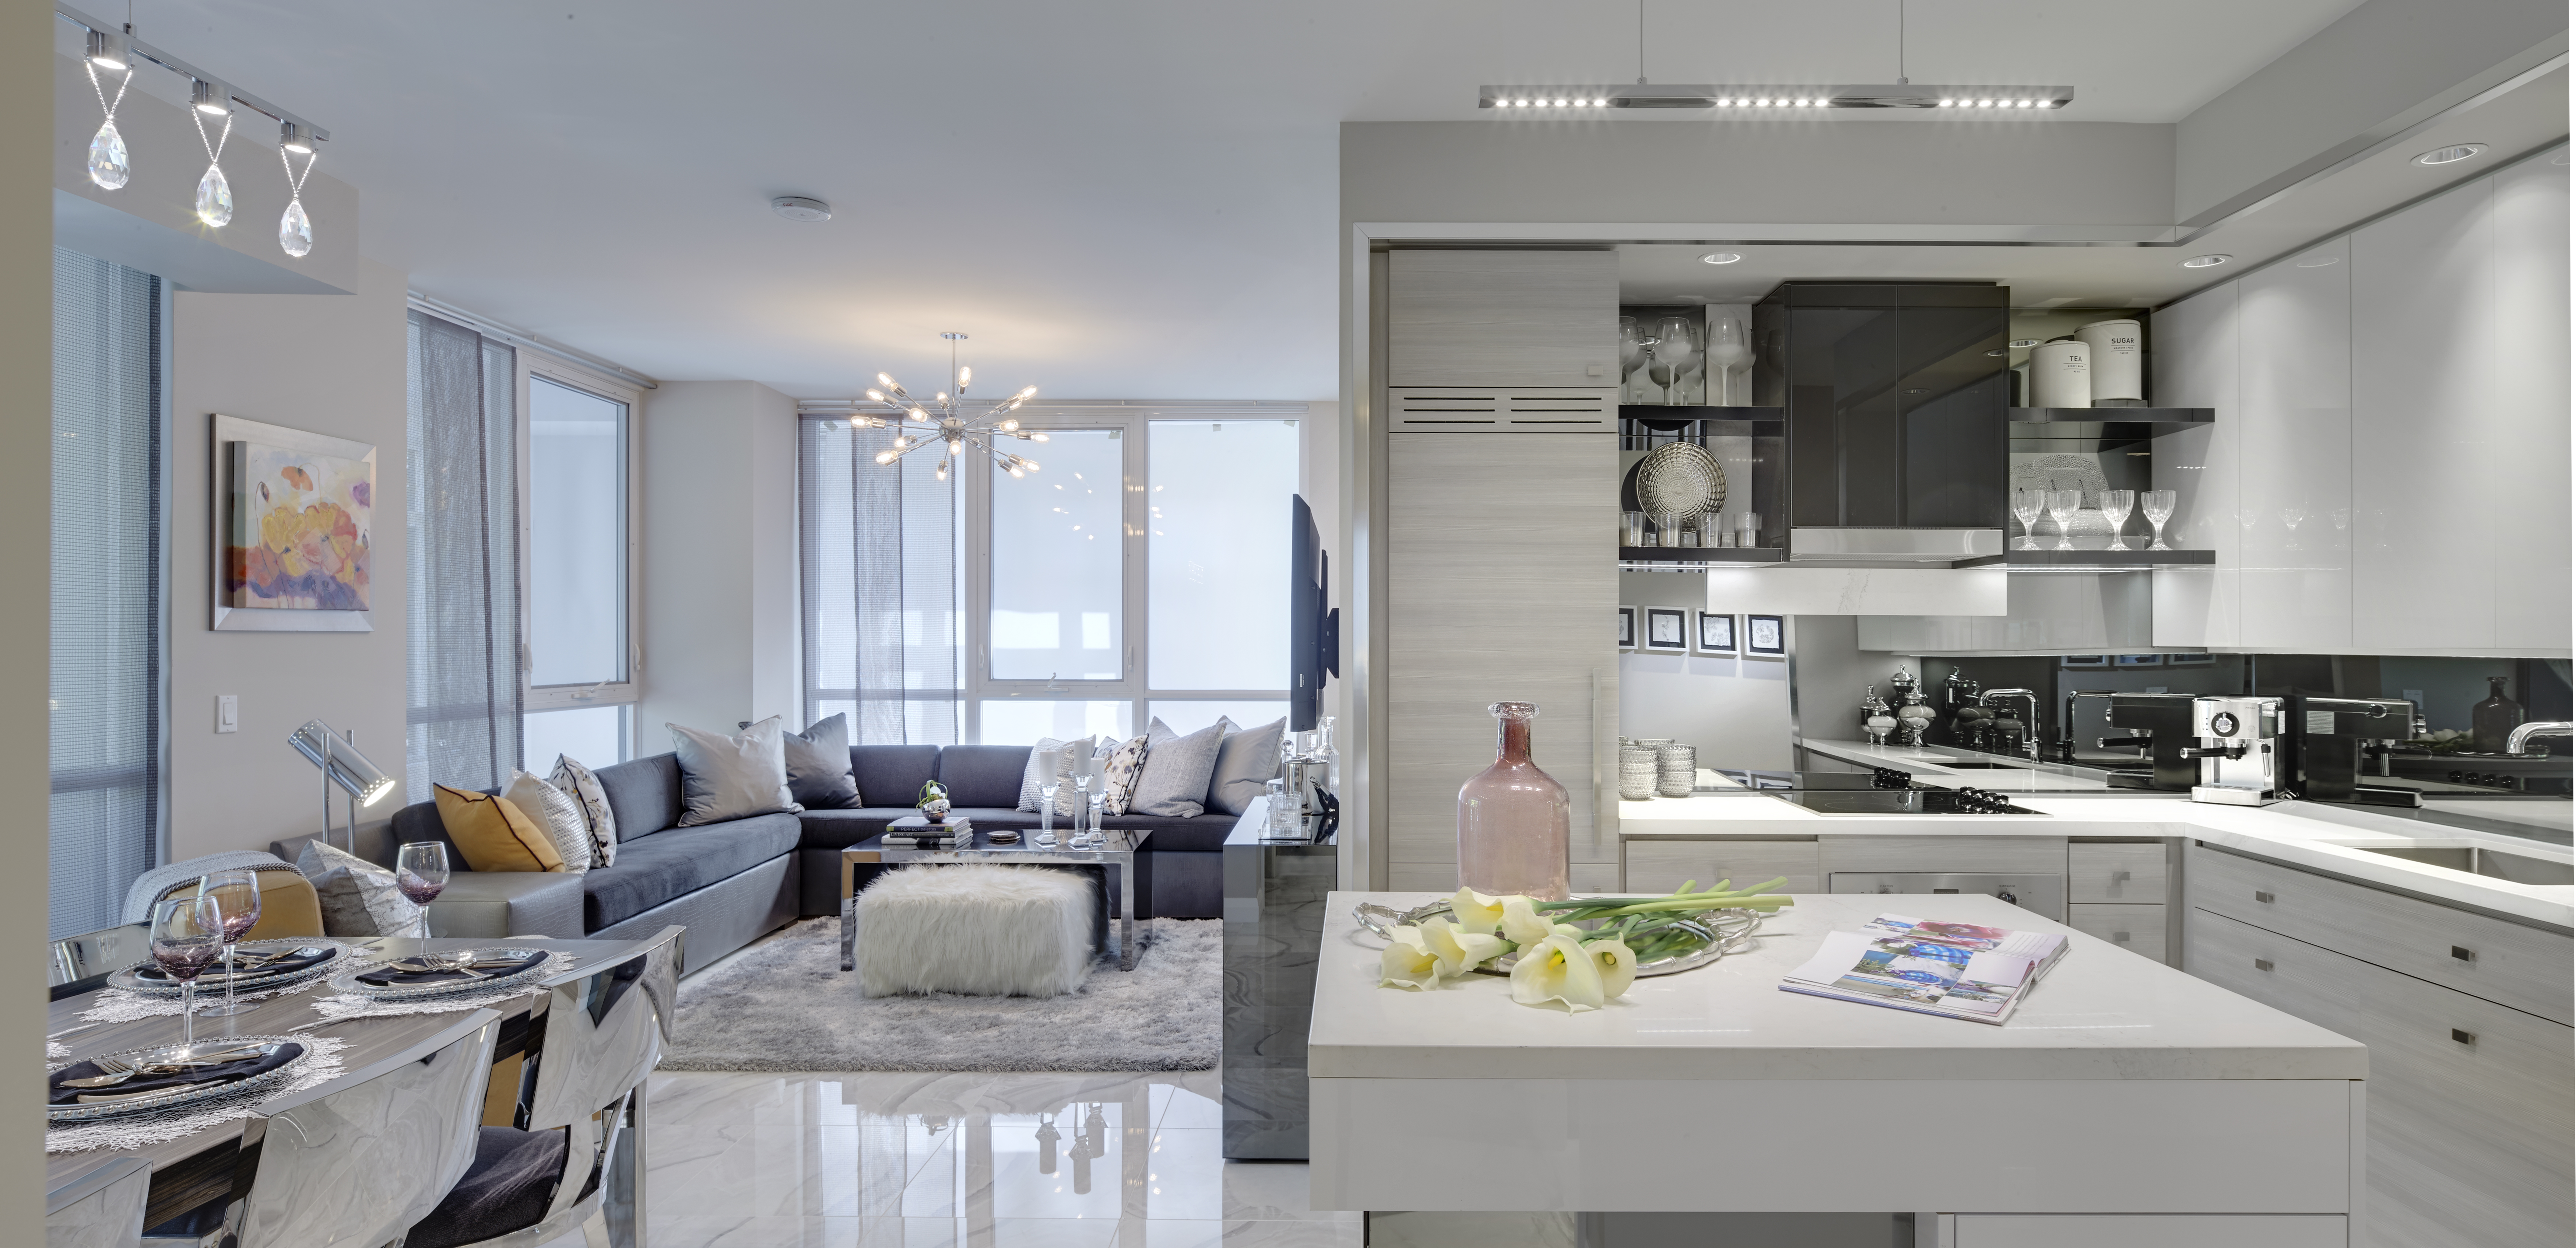 Condos Yorkville Condos For Sale Toronto Yorkville Condos Male Models Picture